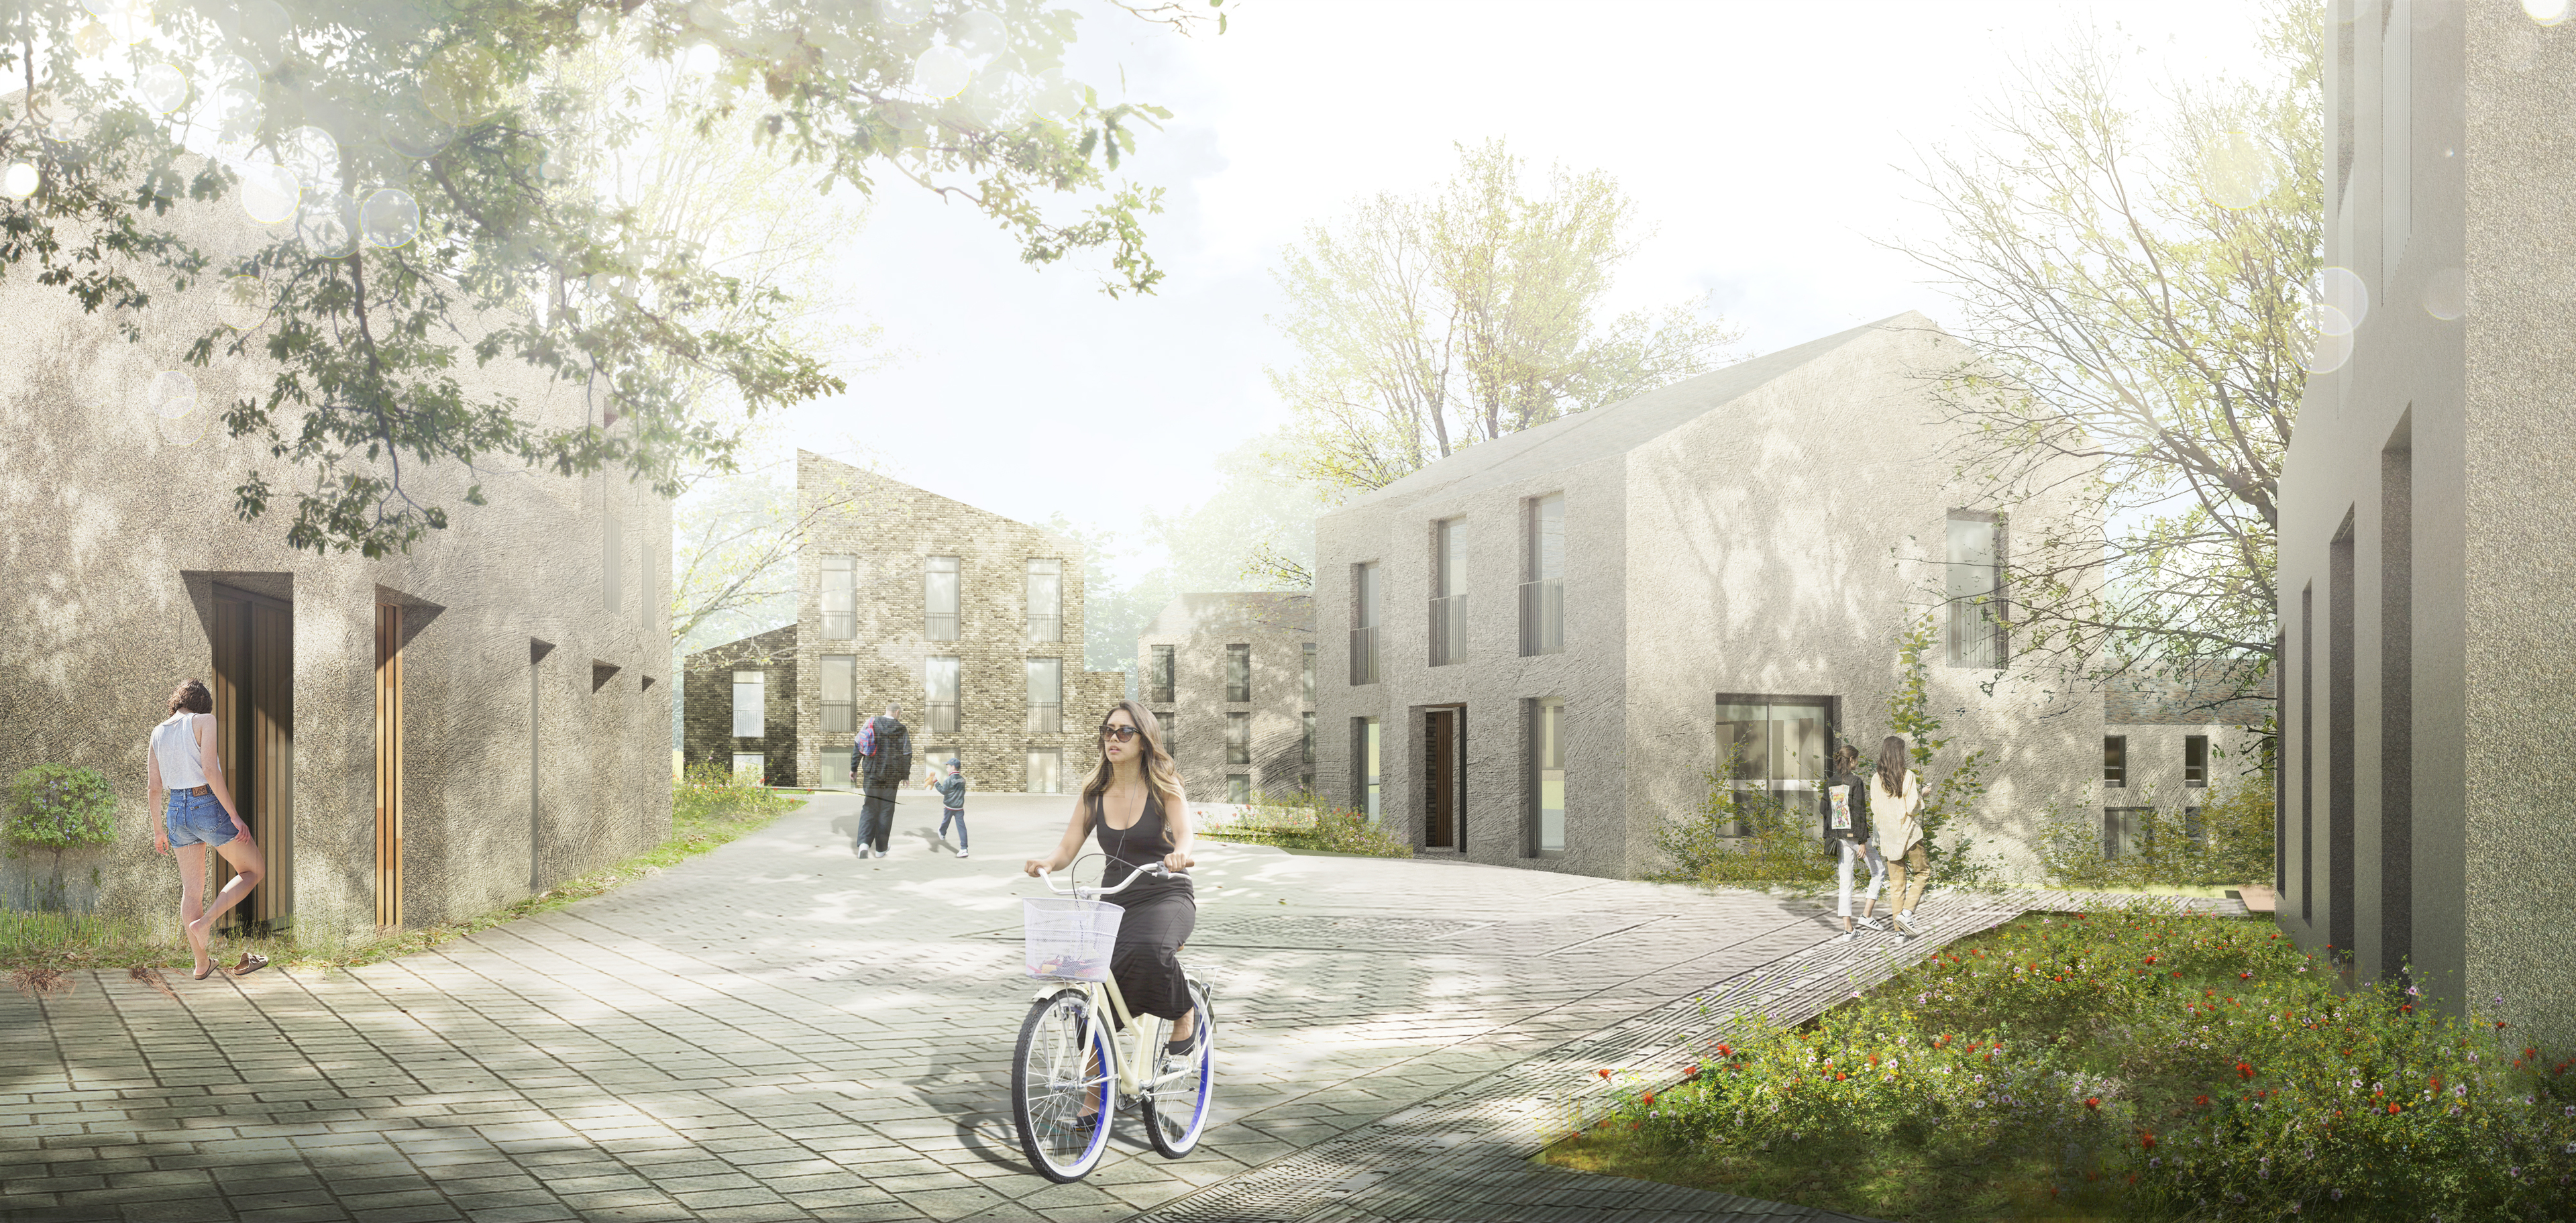 An artist's impression of how the 300 house development at Dunbeg, near Oban could look once it has been completed.